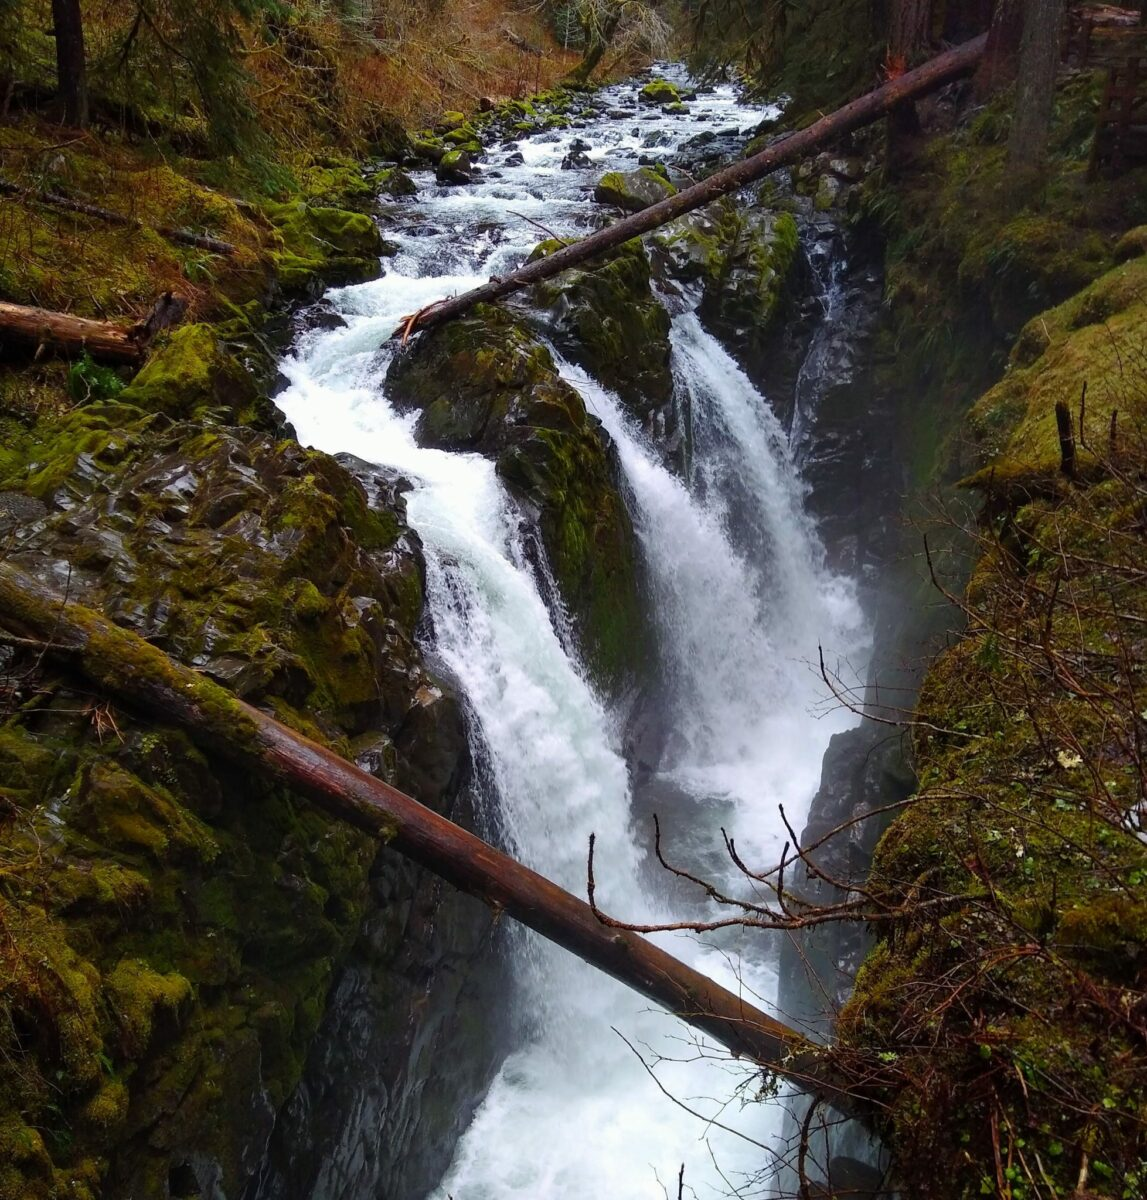 A waterfall with three channels plunges over the rocks at the end of the Sol Duc falls trail, one of the best hikes in washington